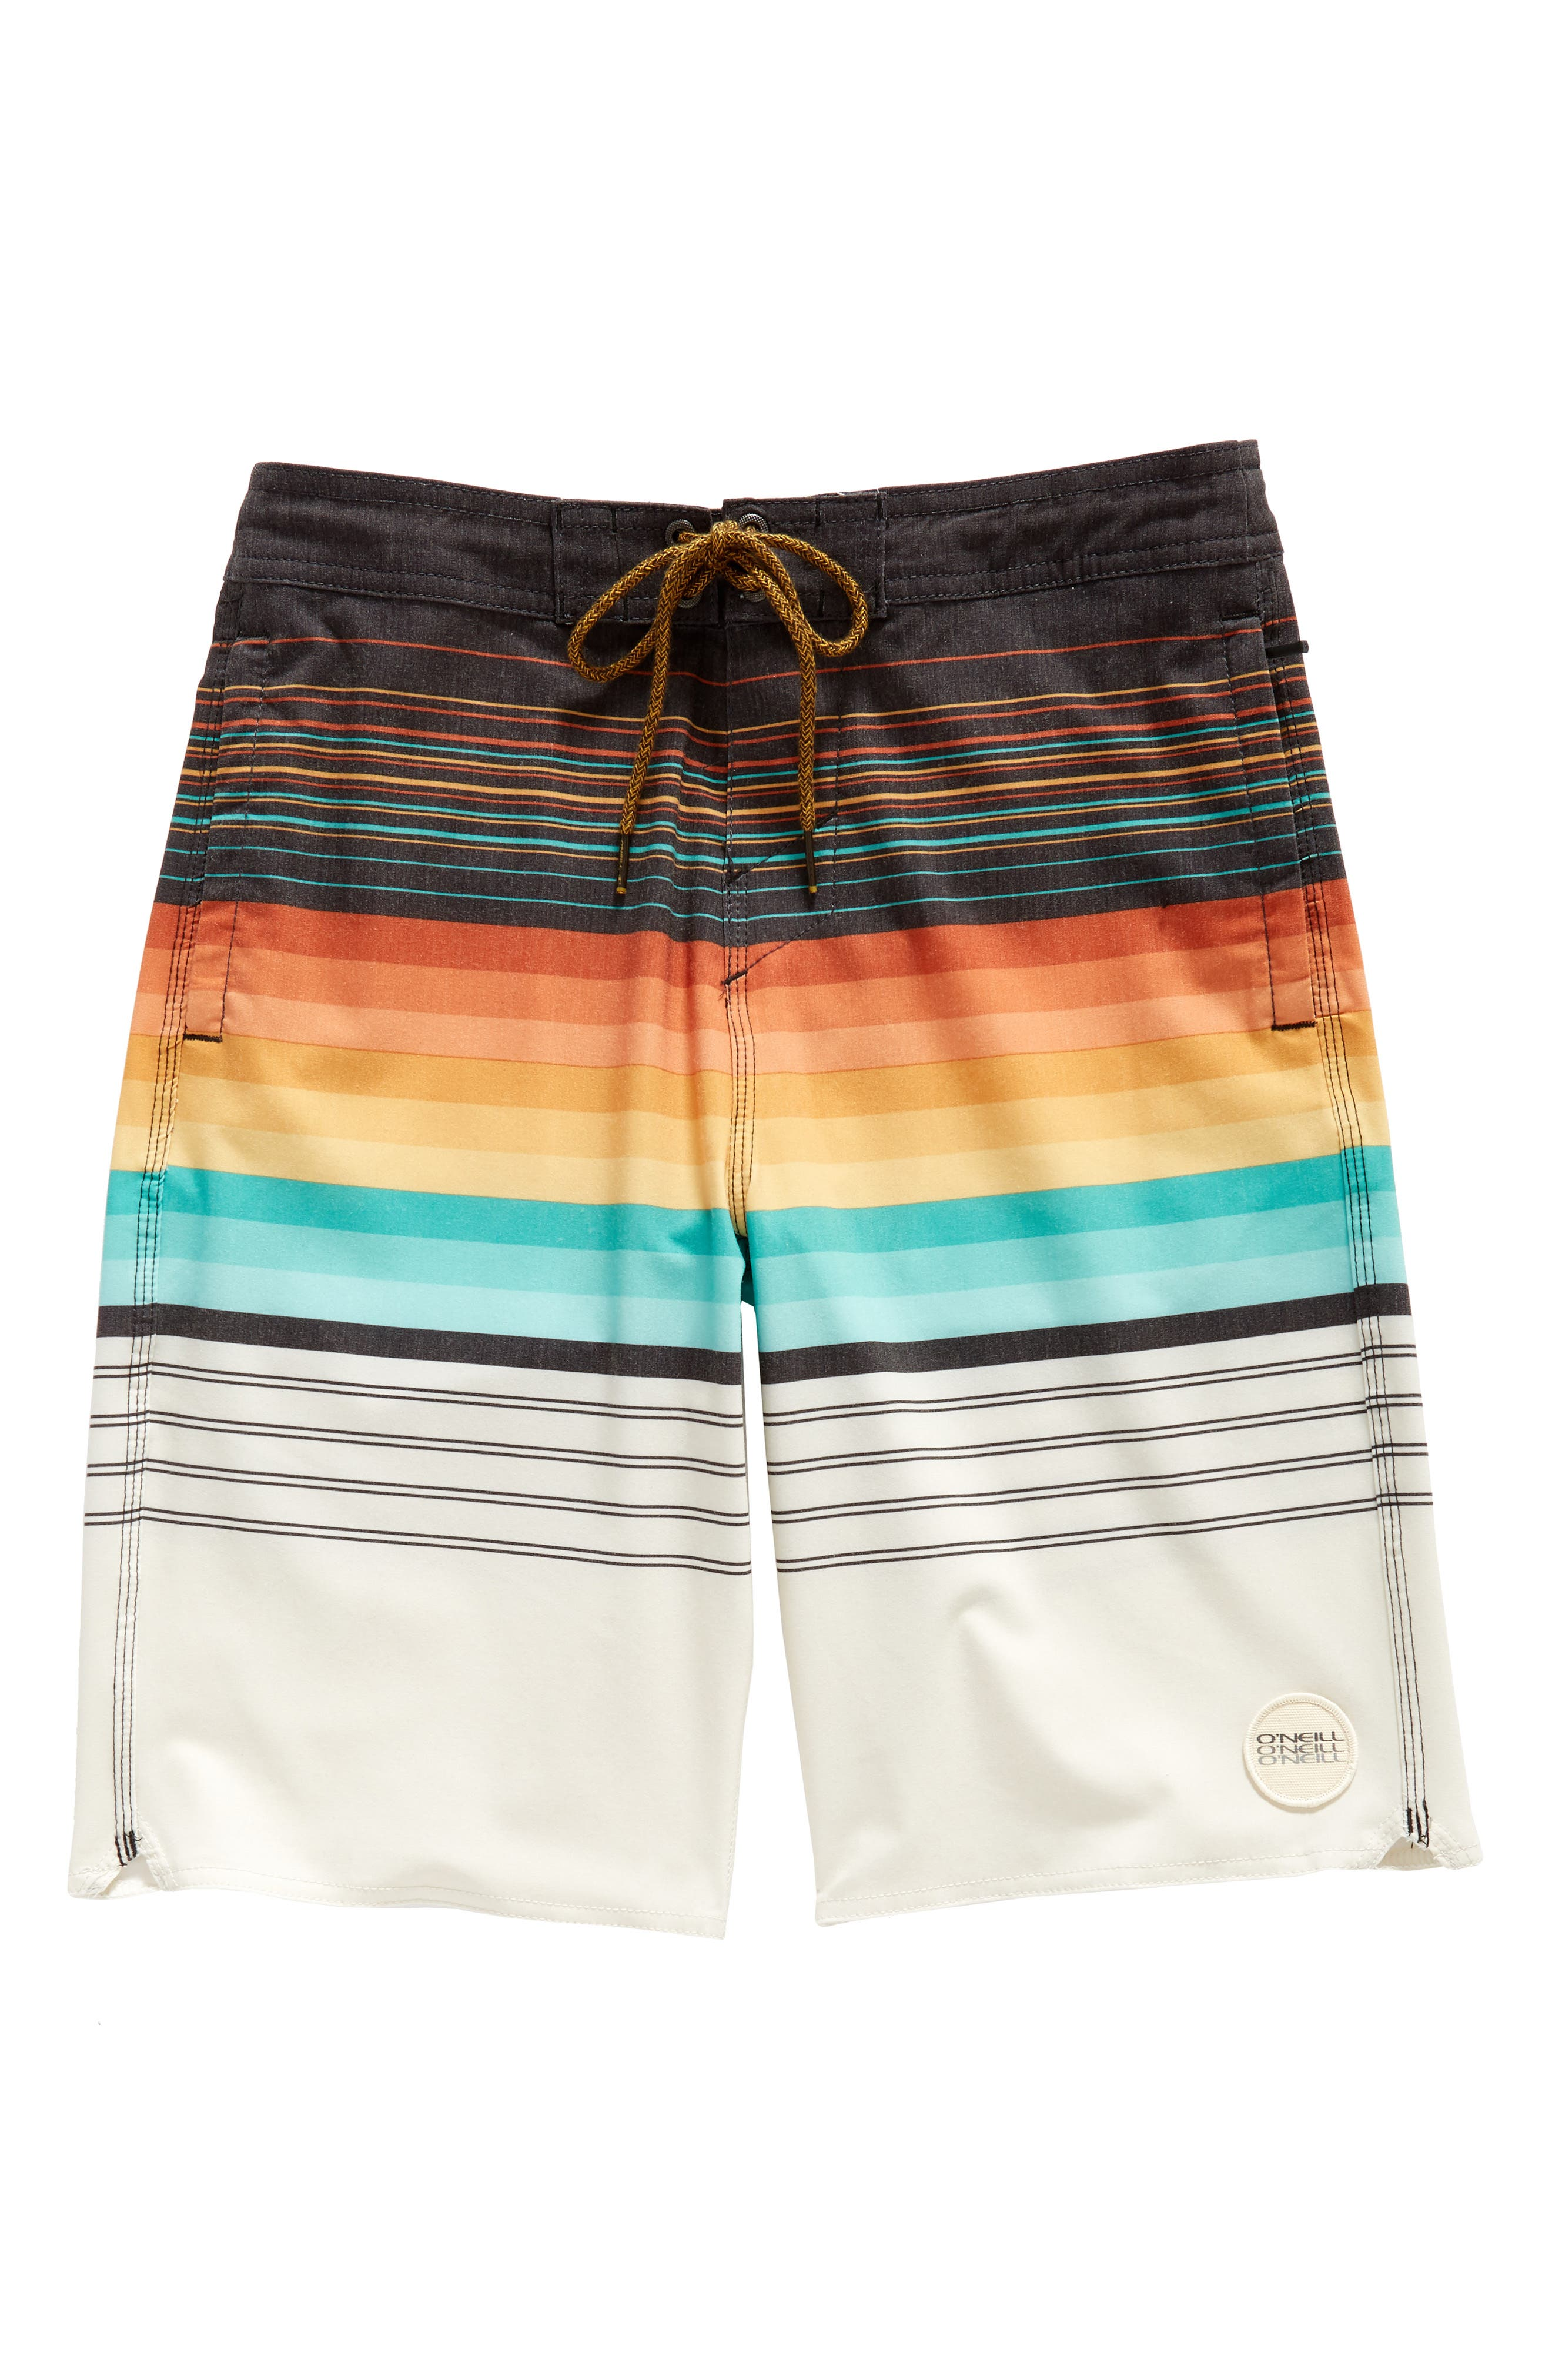 O'Neill Sandbar Cruzer Board Shorts (Big Boys)